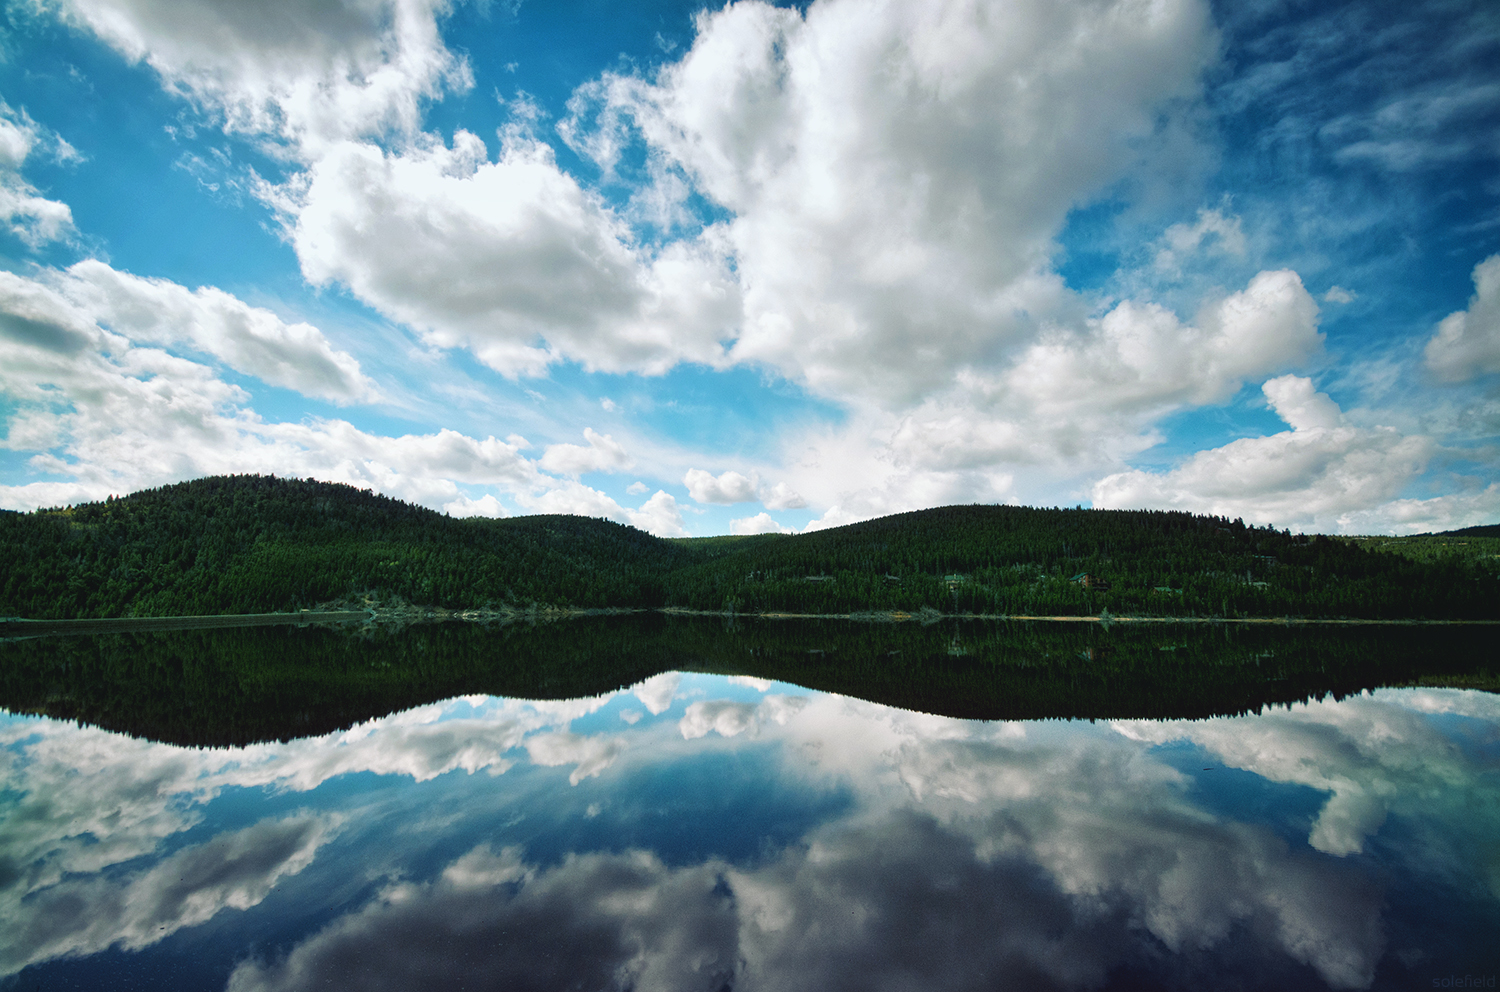 Reflection of clouds in lake